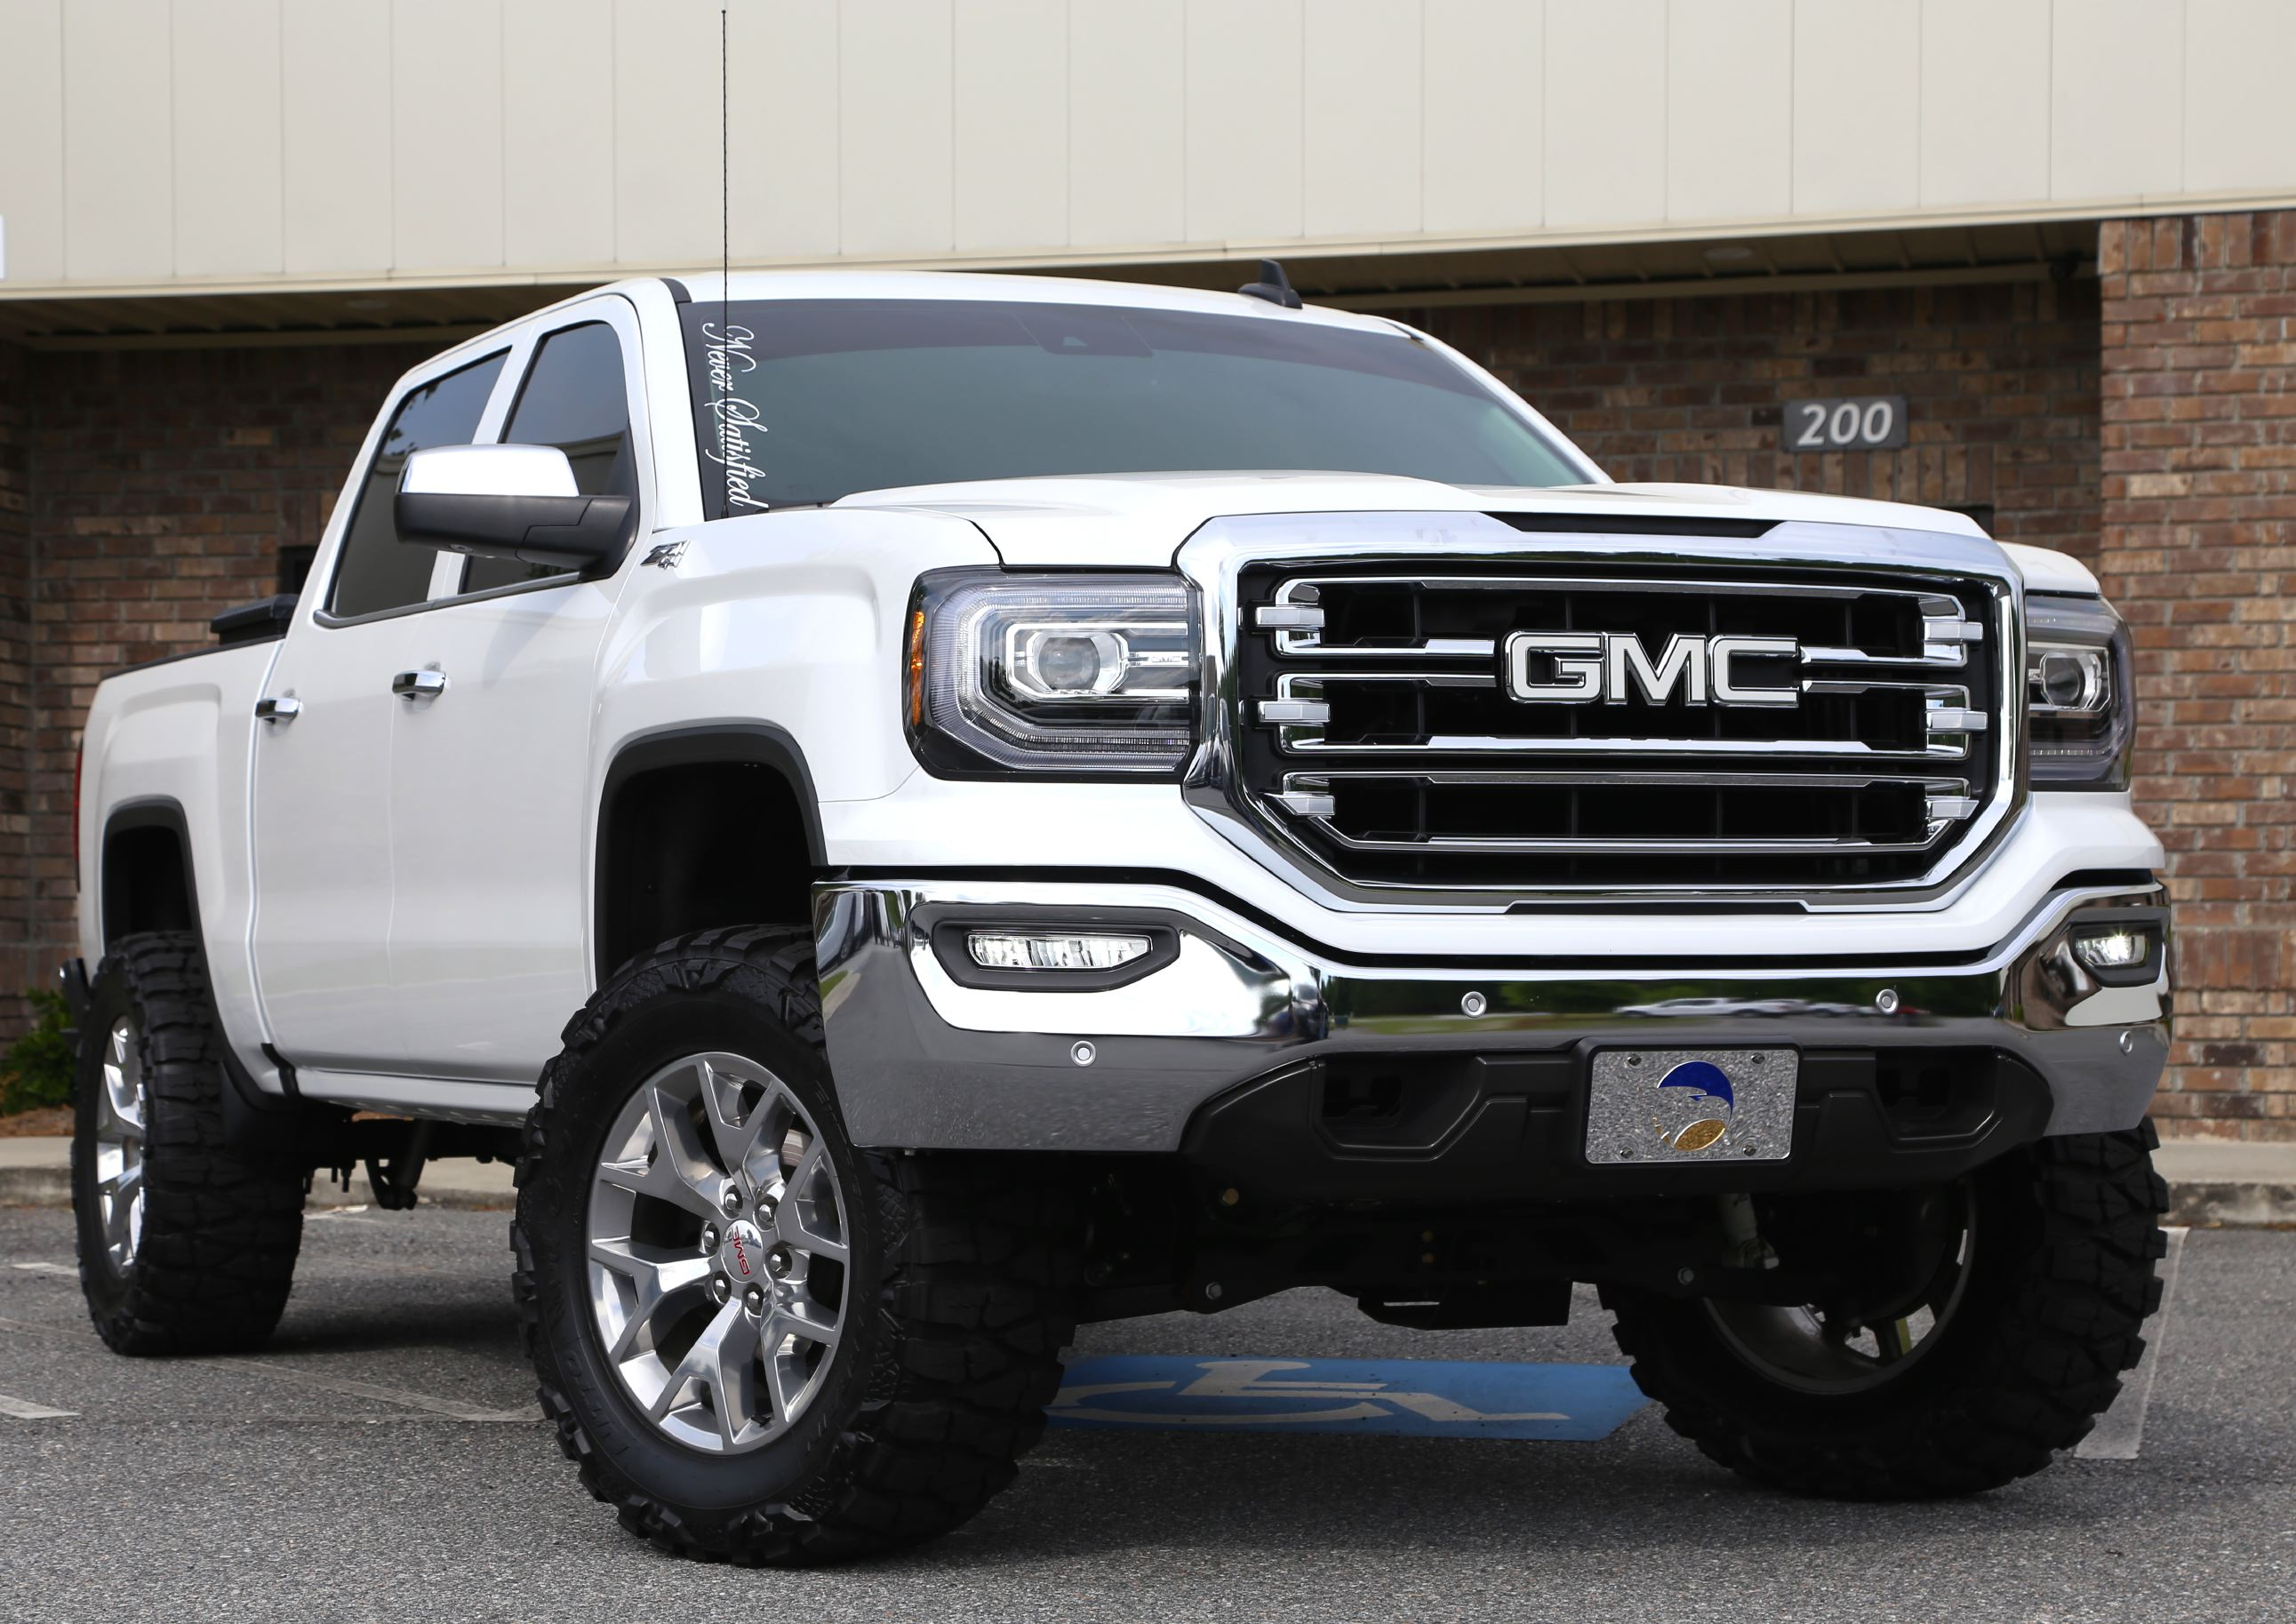 2016 Gmc Sierra 1500 Hostile Sprocket Fabtech Suspension ... |Lifted Gmc Sierra